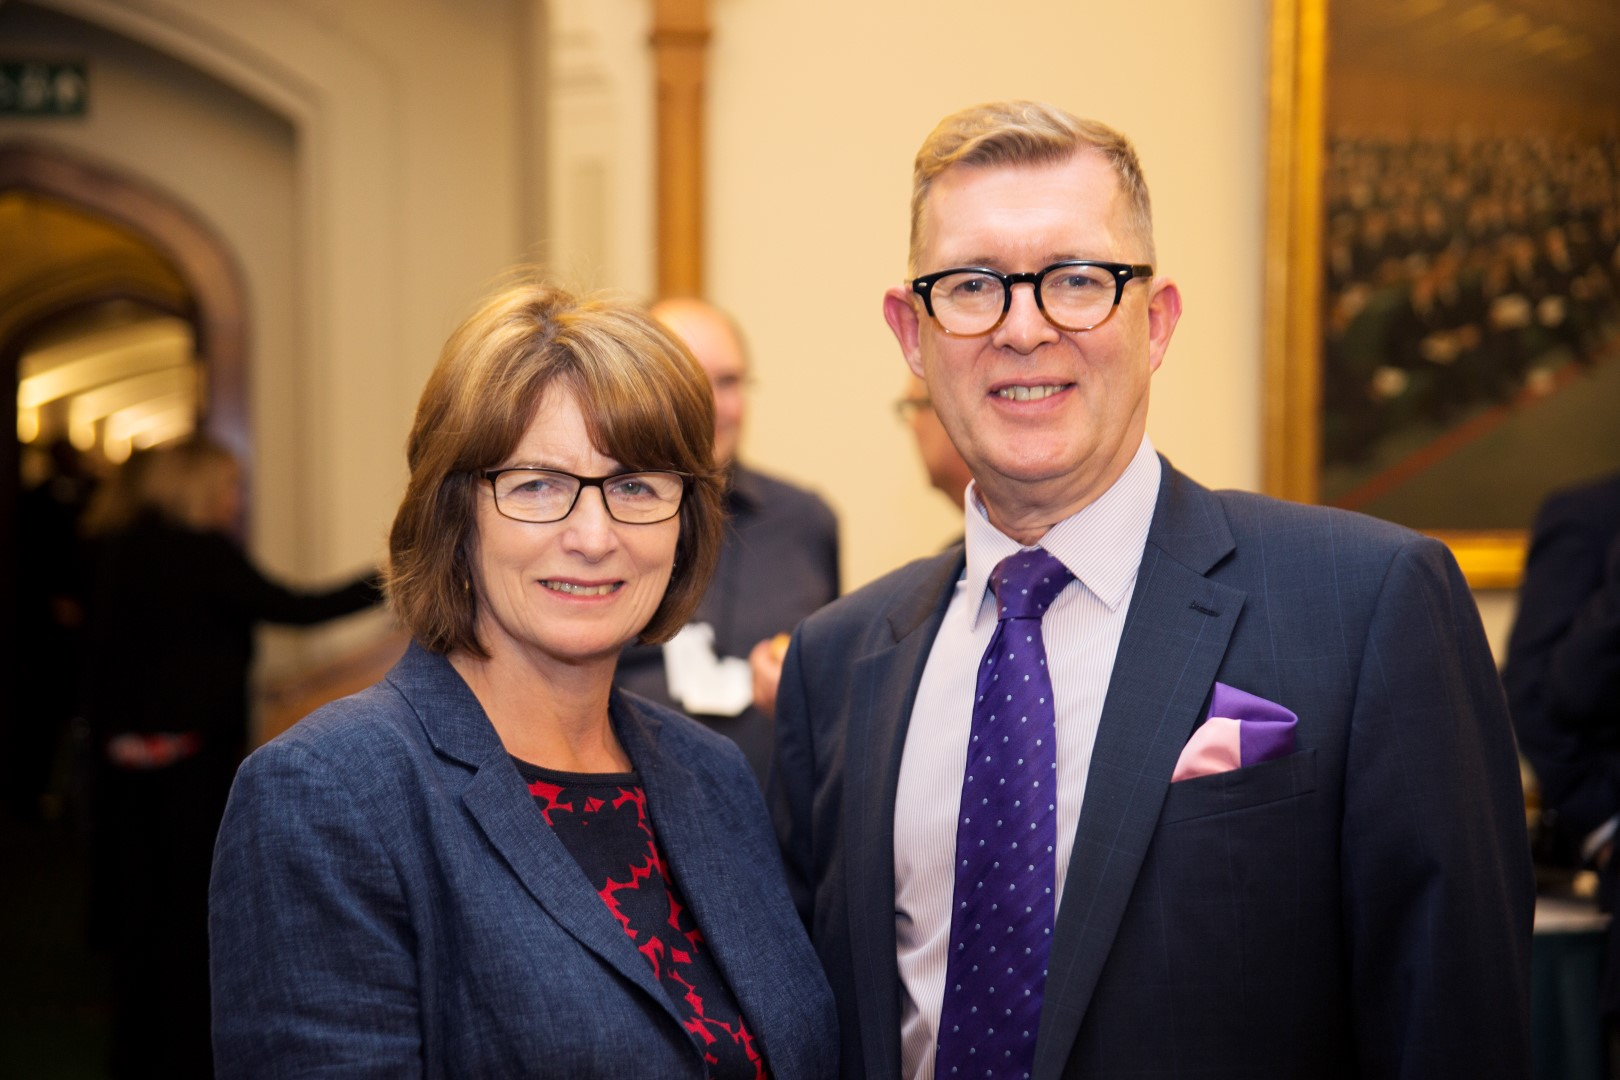 Photo of Councillor Jamie Macrae, Cheshire East Council (now retired), former Chair of PATROL Joint Committee with Louise Ellman, former MP for Liverpool Riverside